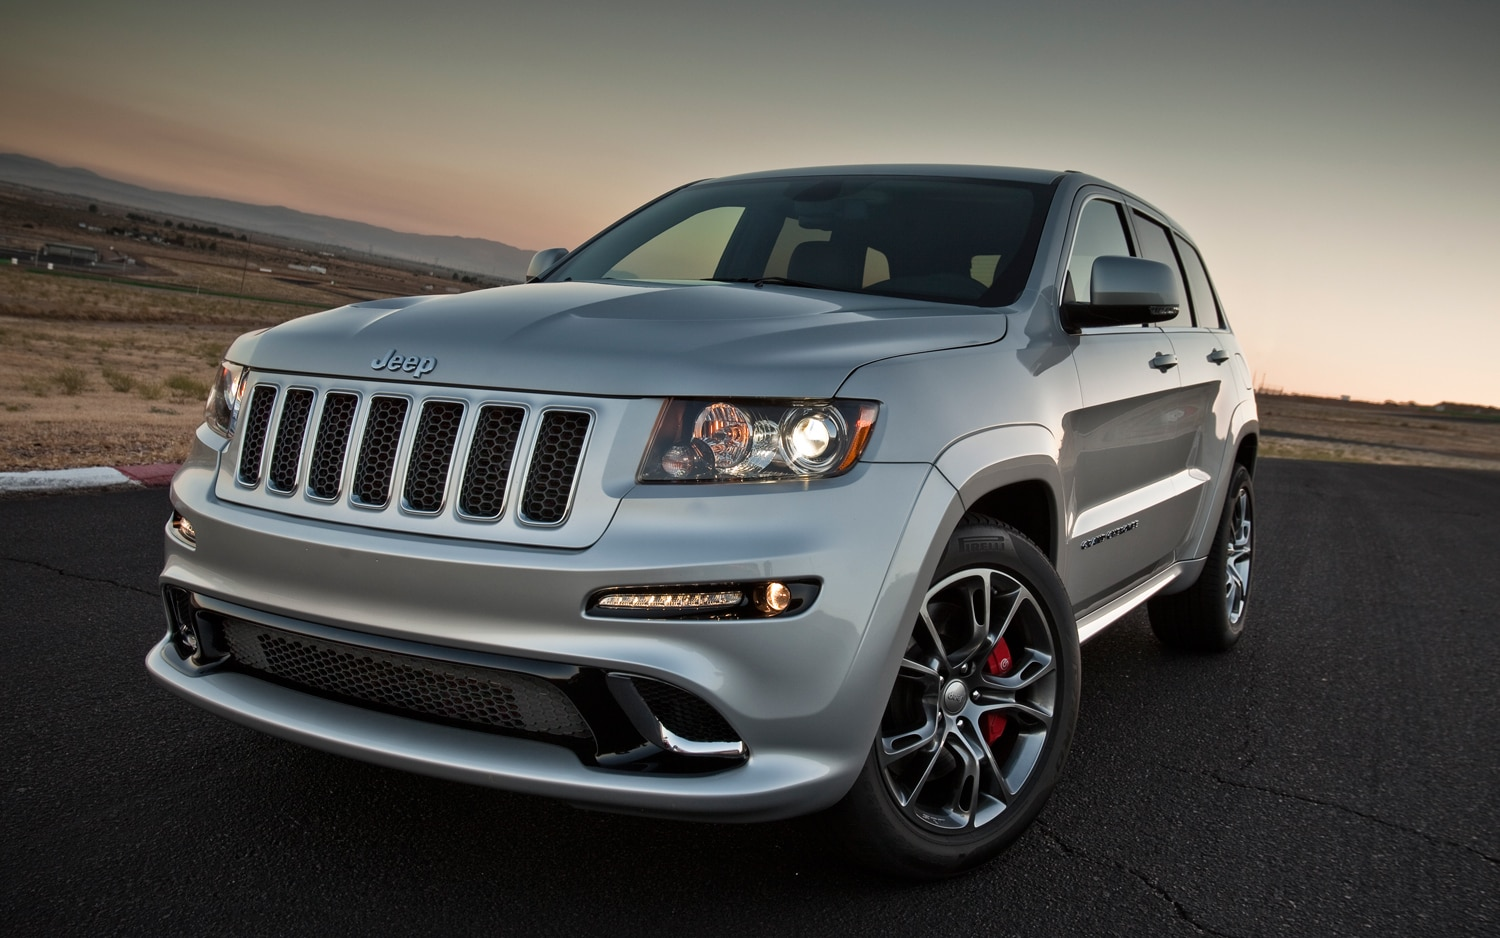 2012 Jeep Grand Cherokee SRT8 Front Three Quarters View